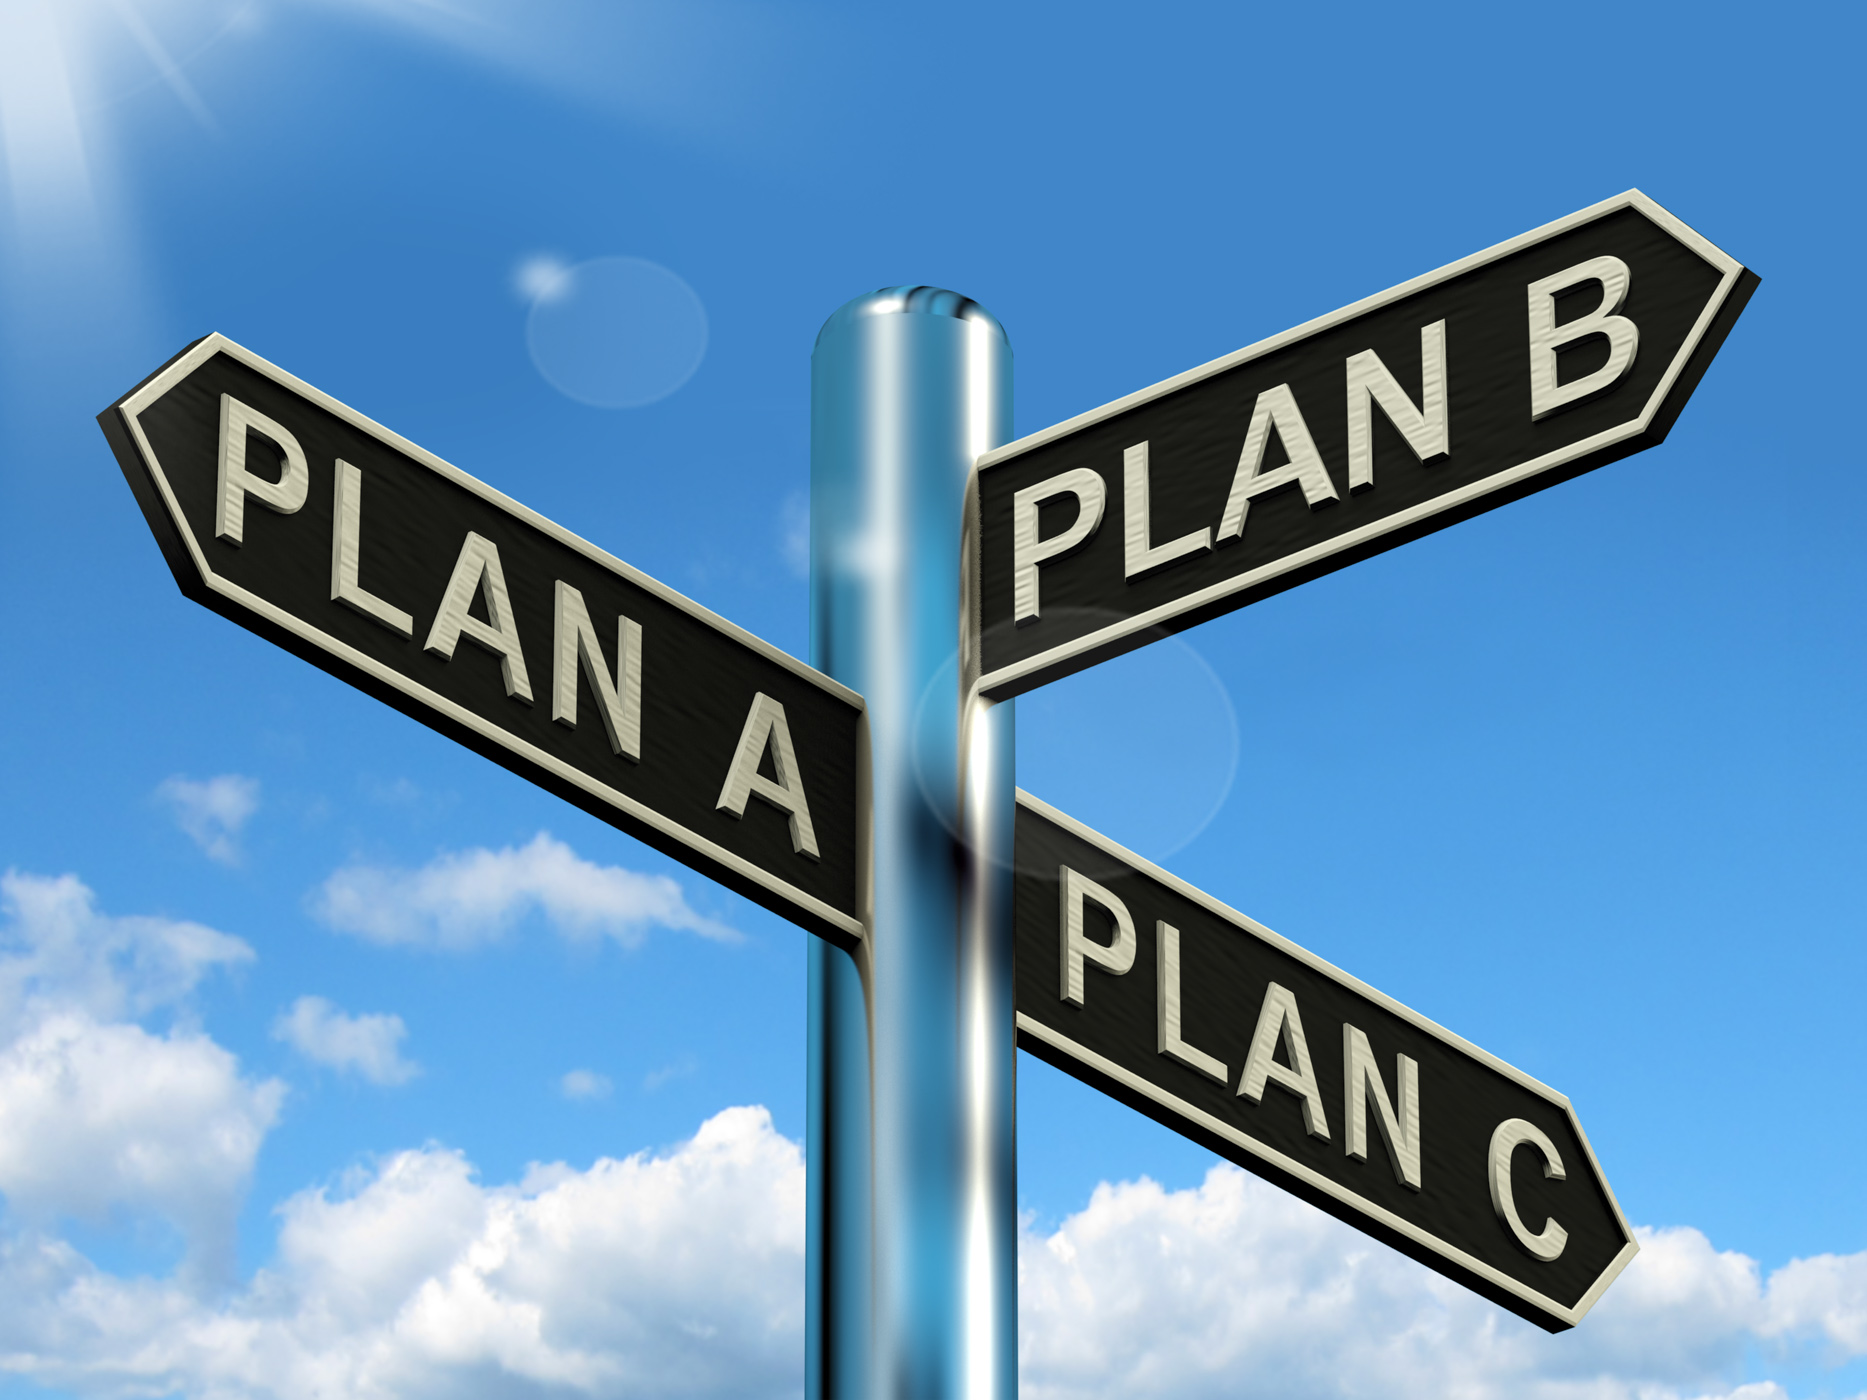 Plan a b or c choice showing strategy change or dilemma photo